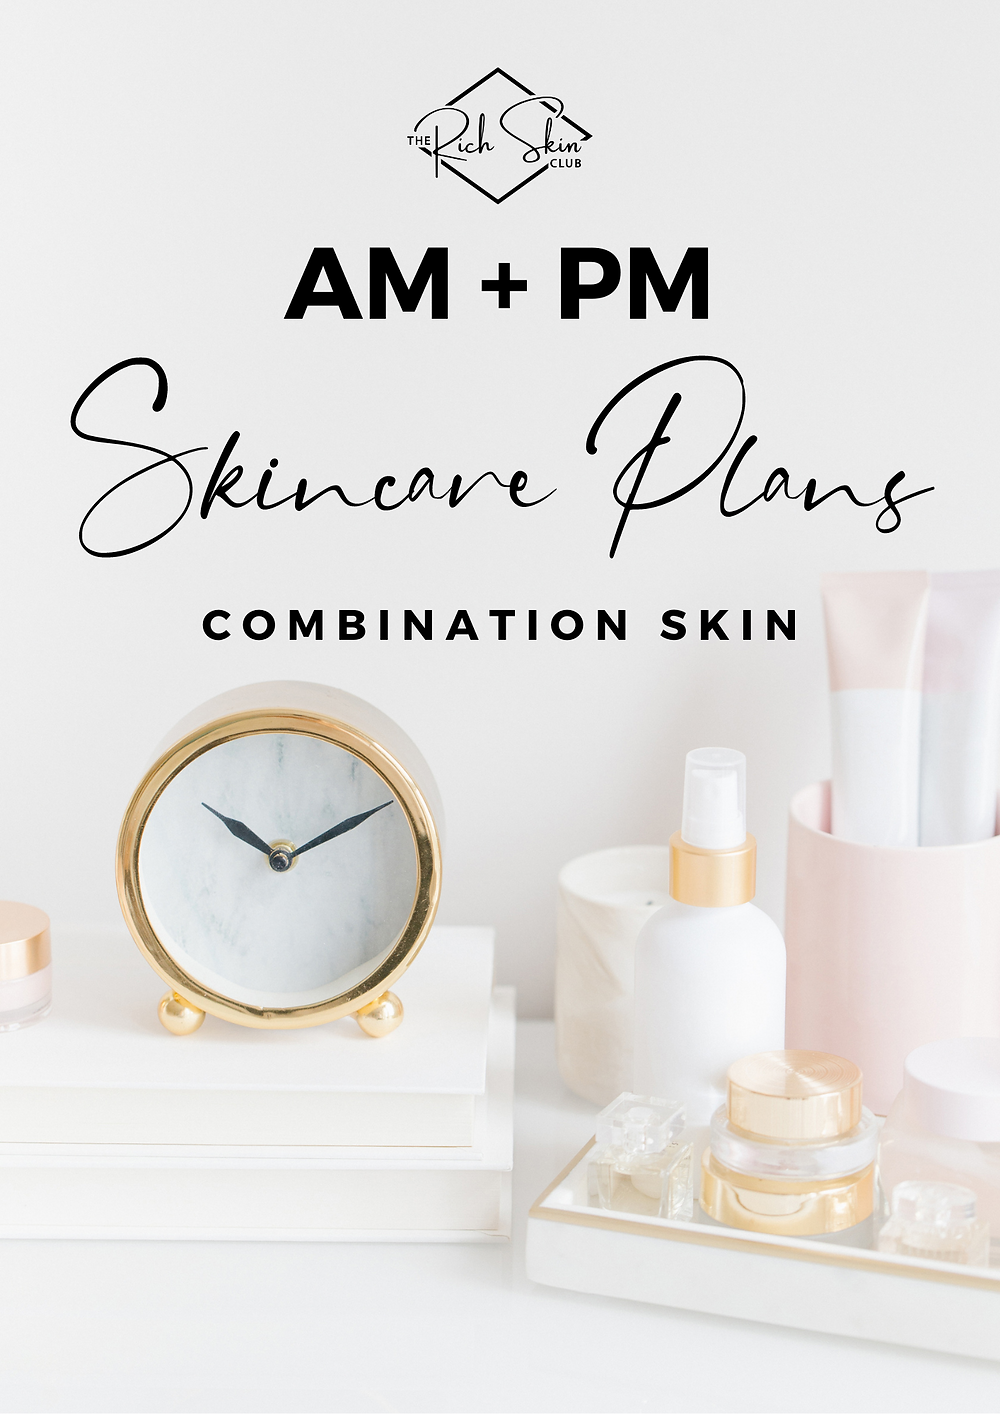 Need help creating a skincare routine for your combination skin? Not sure what order to apply your skincare products?Click the link to download a simple skincare routine to start improving your skin today. Includes a morning skincare routine, night routine, DIY at-home facial routine plus Bonus Pro Skin Tips for combination skin. #perfectskinroutine #dailybeautyroutine #basicskincareroutine